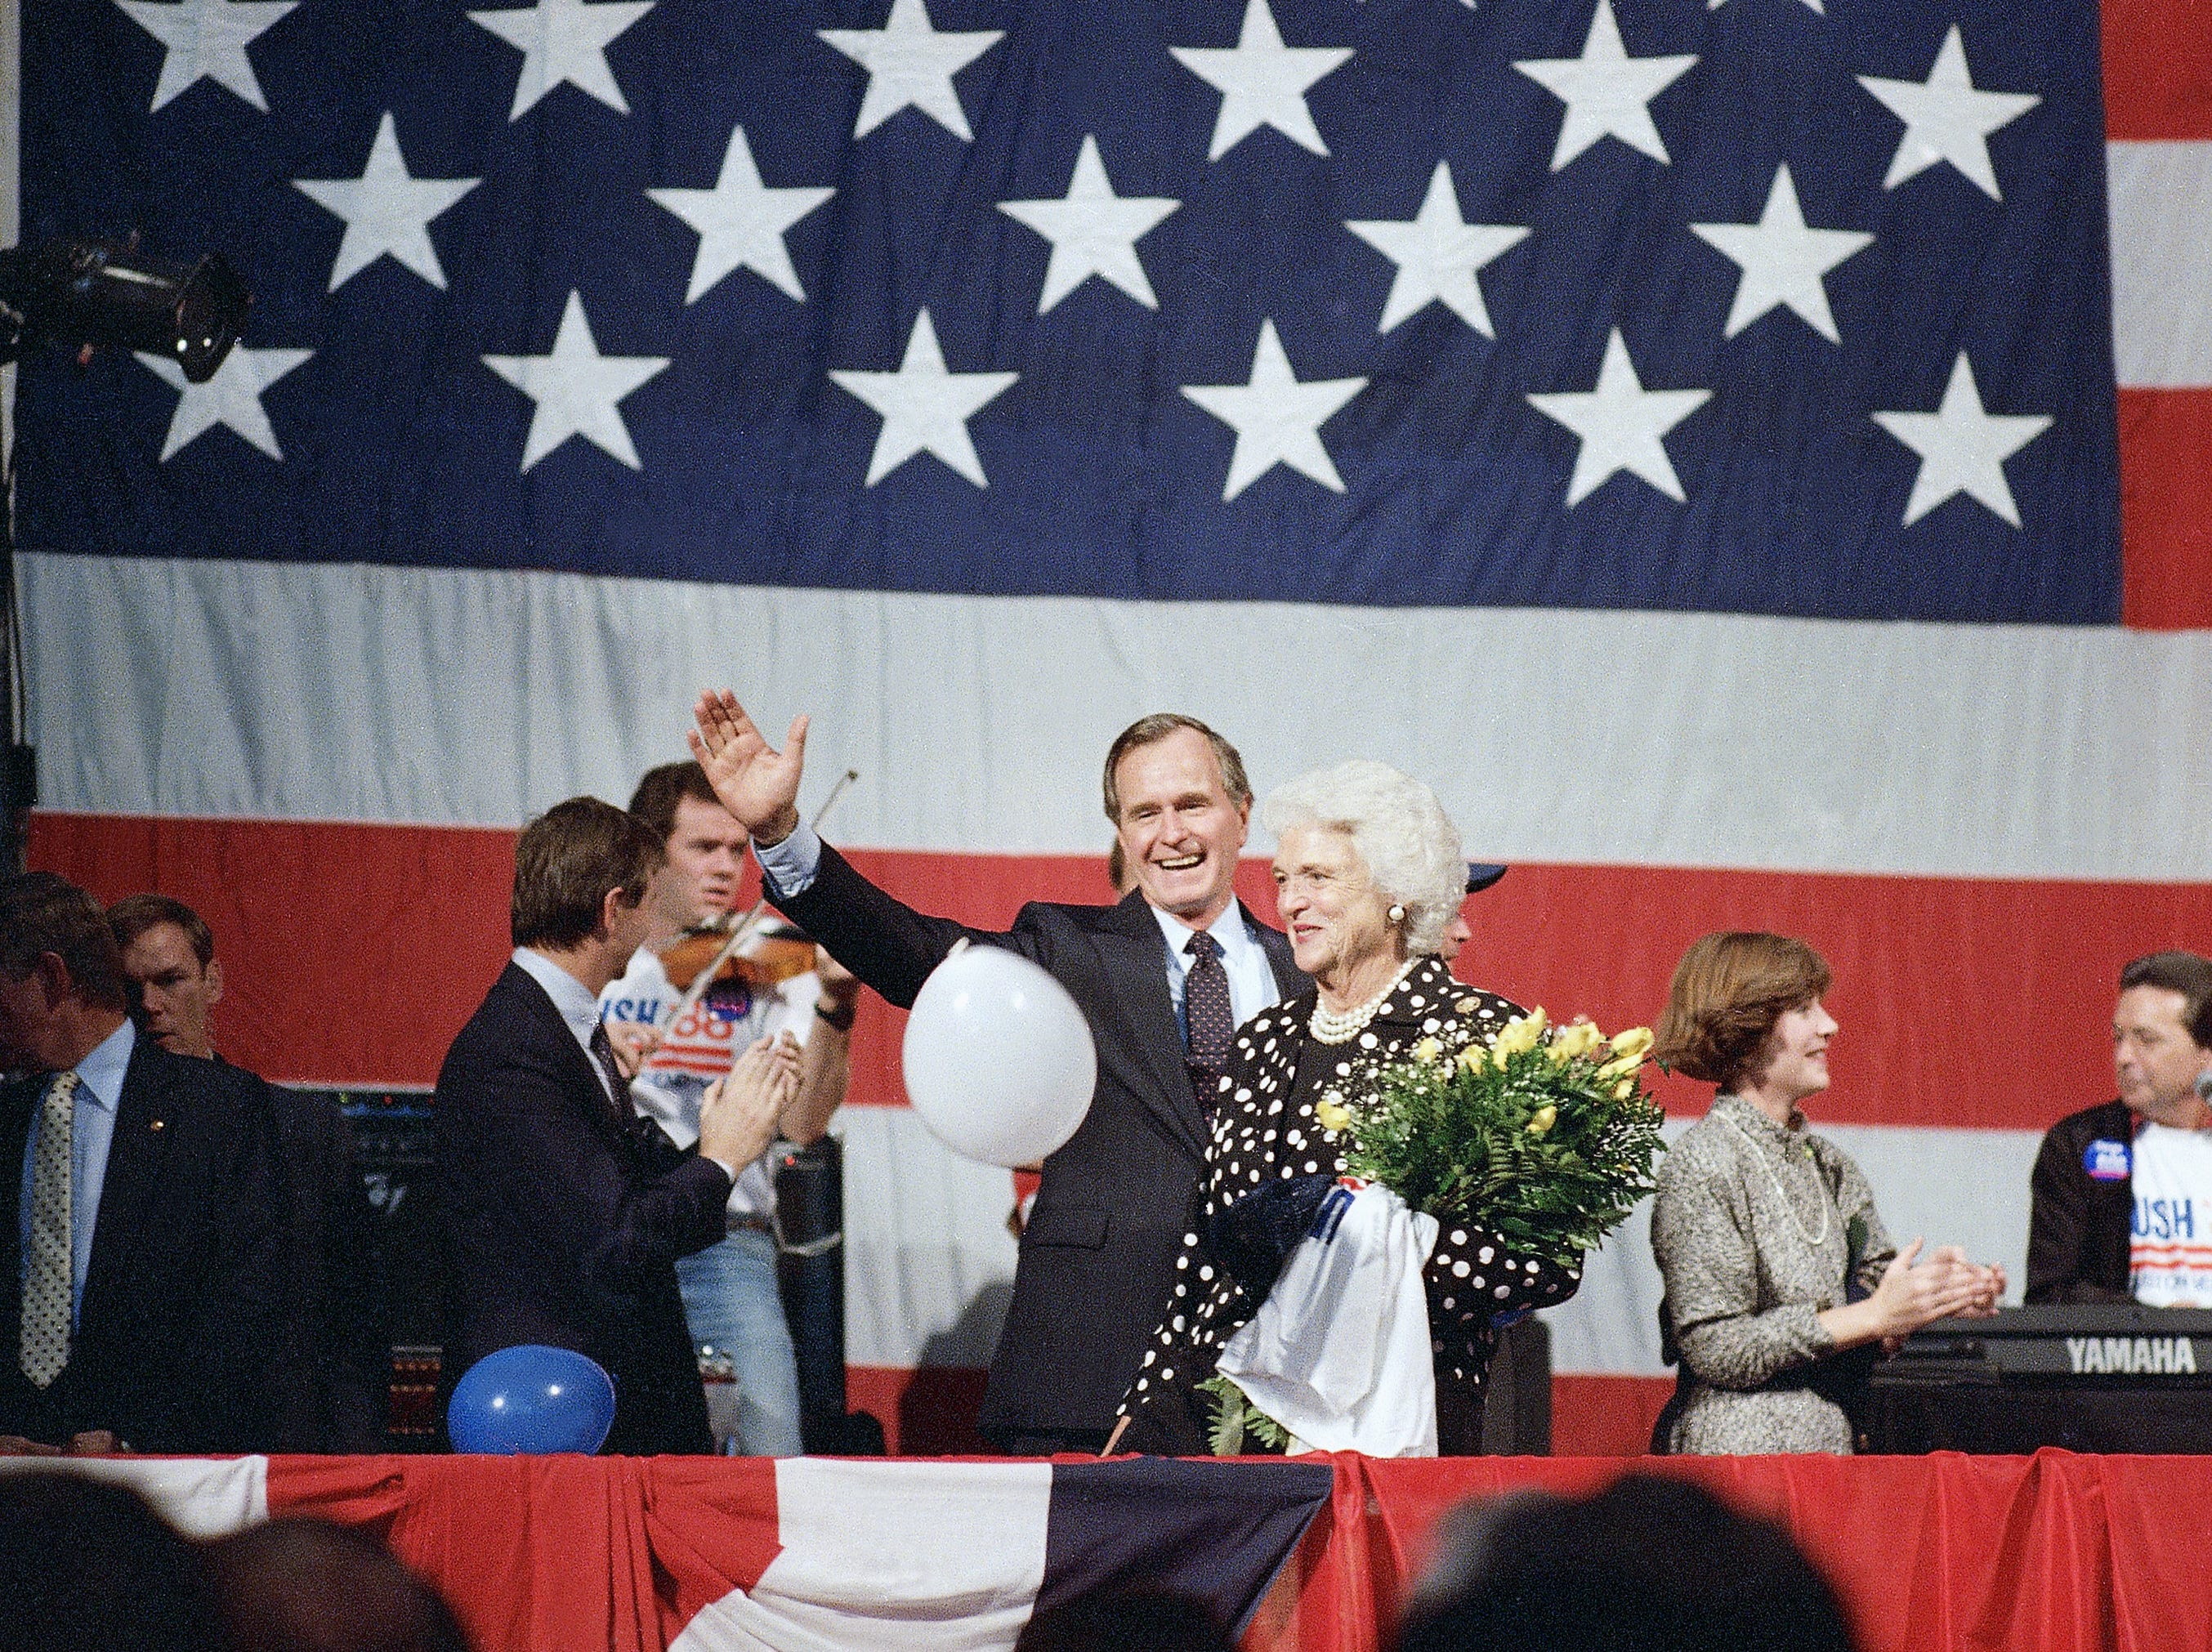 Vice President George H. Bush and wife, Barbara, backed up by their family, meet supporters, Oct. 12, 1987, in Houston where Bush announced that he was a candidate for nomination by the Republican Party for president of the United States. (AP Photo/Ed Kolenovsky)